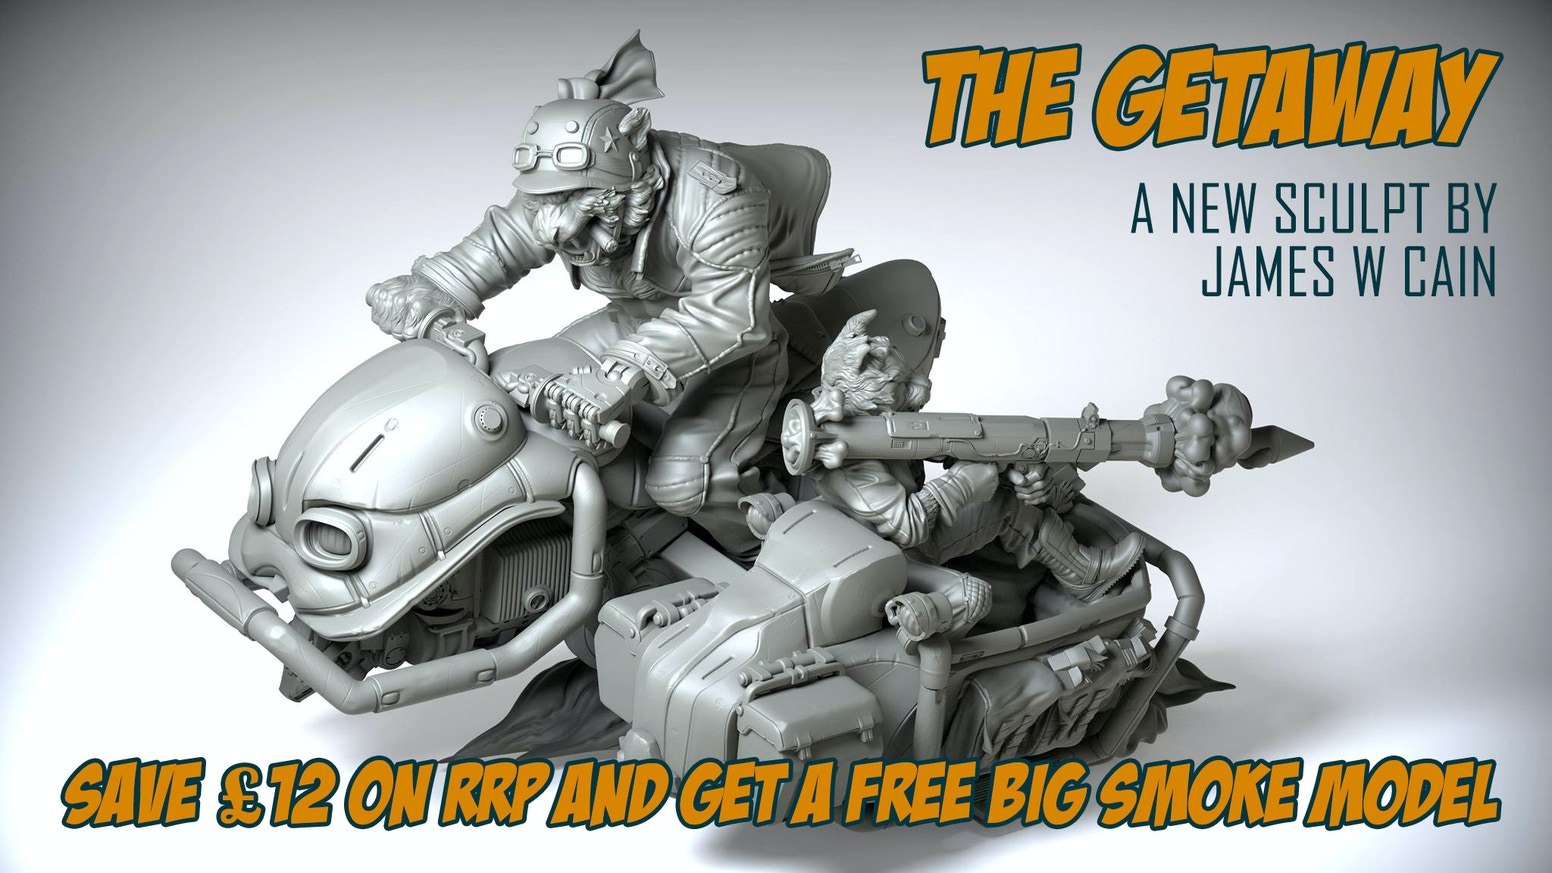 The Getaway is Infamy's largest collectible kit yet. An awesome new model of feline bank robbers on the run, sculpted by James W Cain!